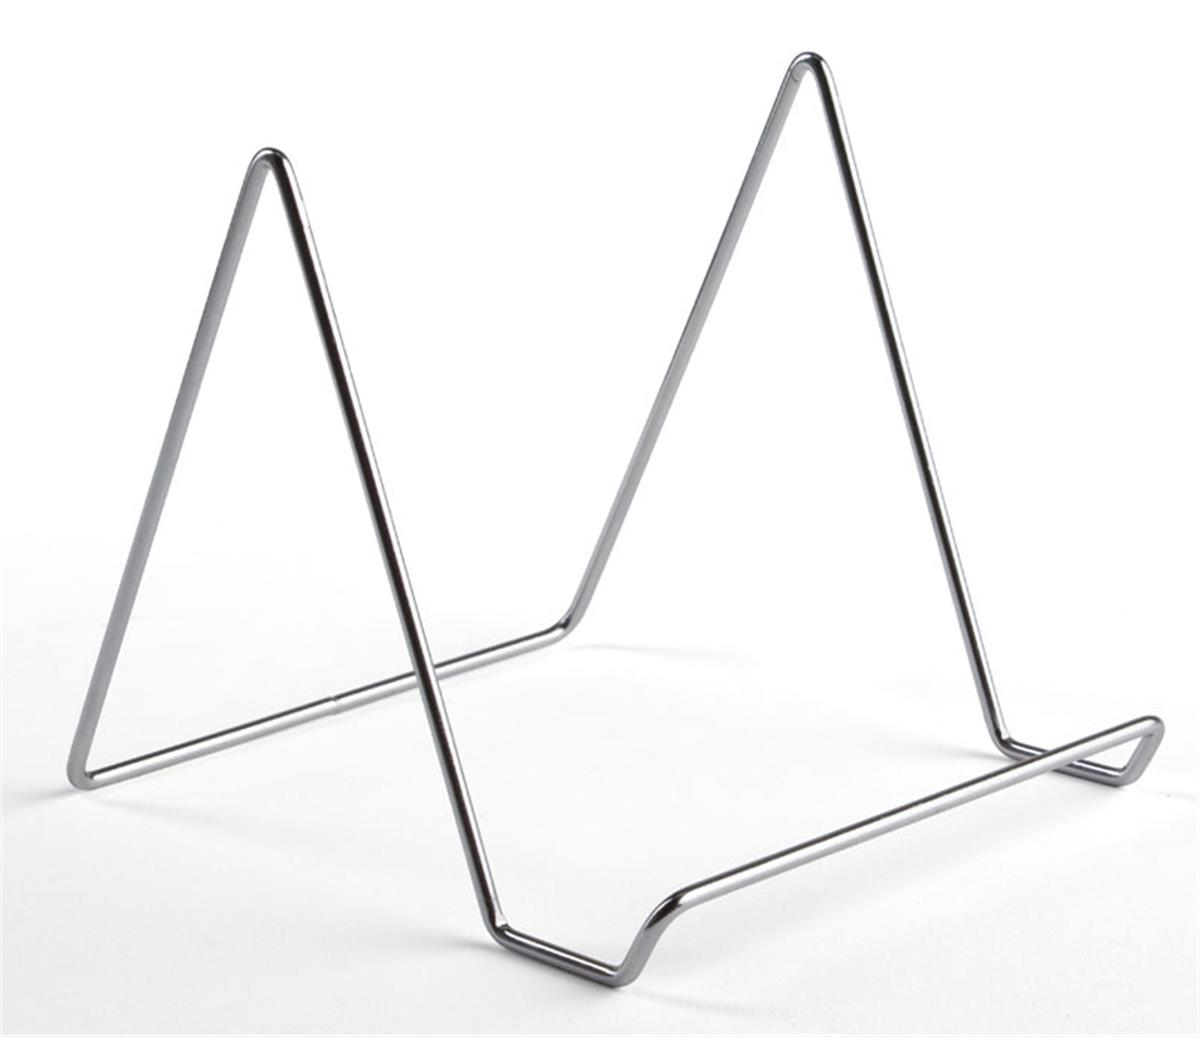 4 Quot X 4 Quot Table Easel For Countertop Use Chrome Wire